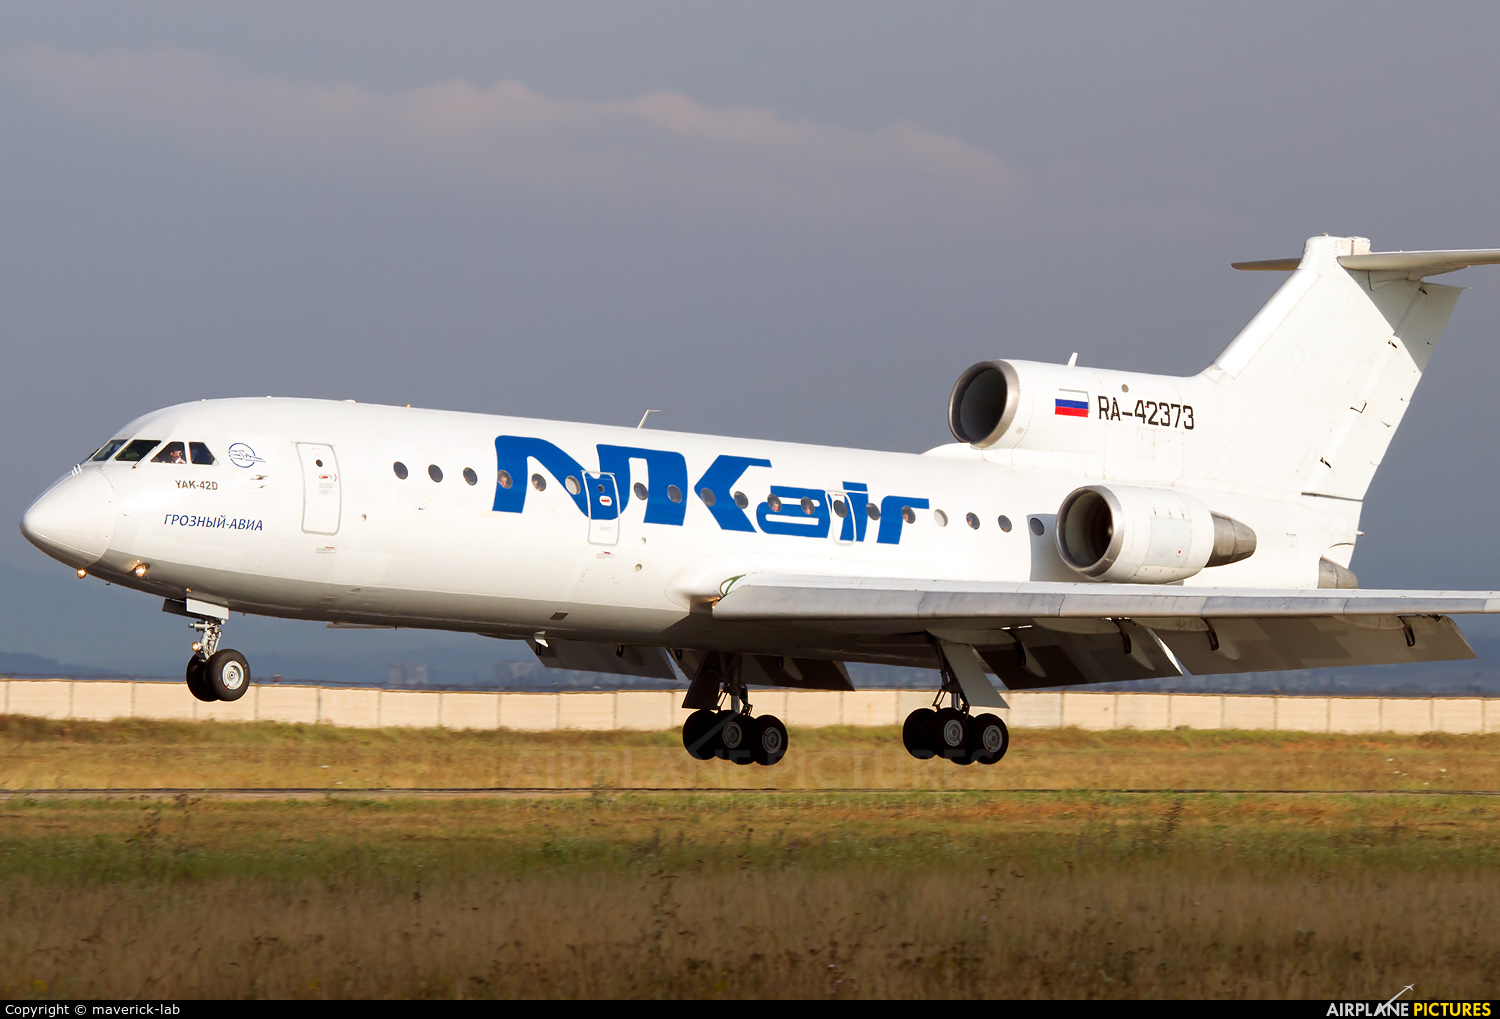 NK Air RA-42373 aircraft at Simferepol Intl